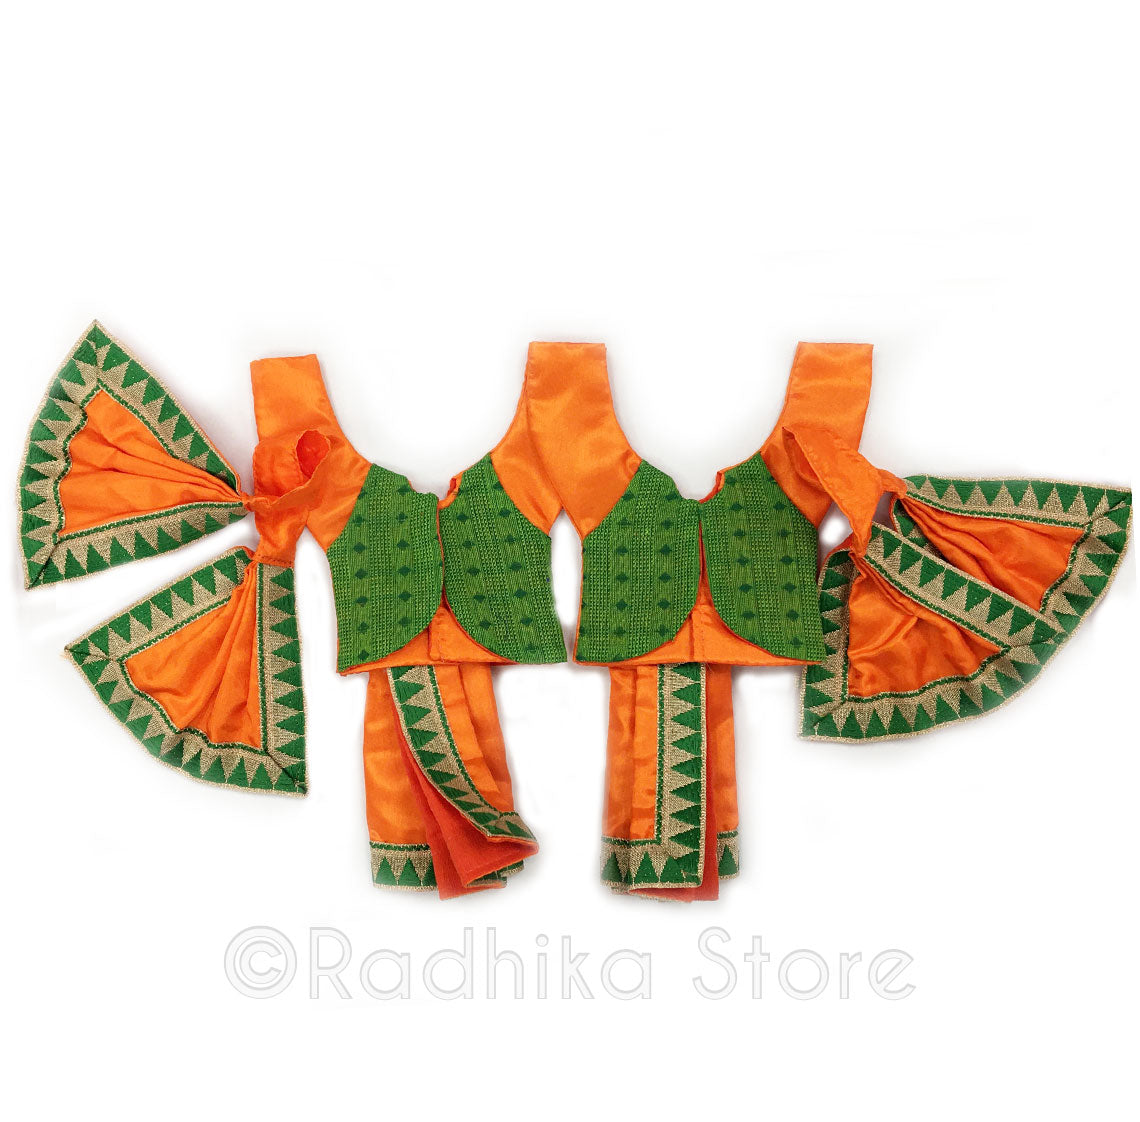 "Nara Hari Orange With Green Vest Deity Outfit - (Gaura Nitai) - 4"" Dhoti - Choose  Design"